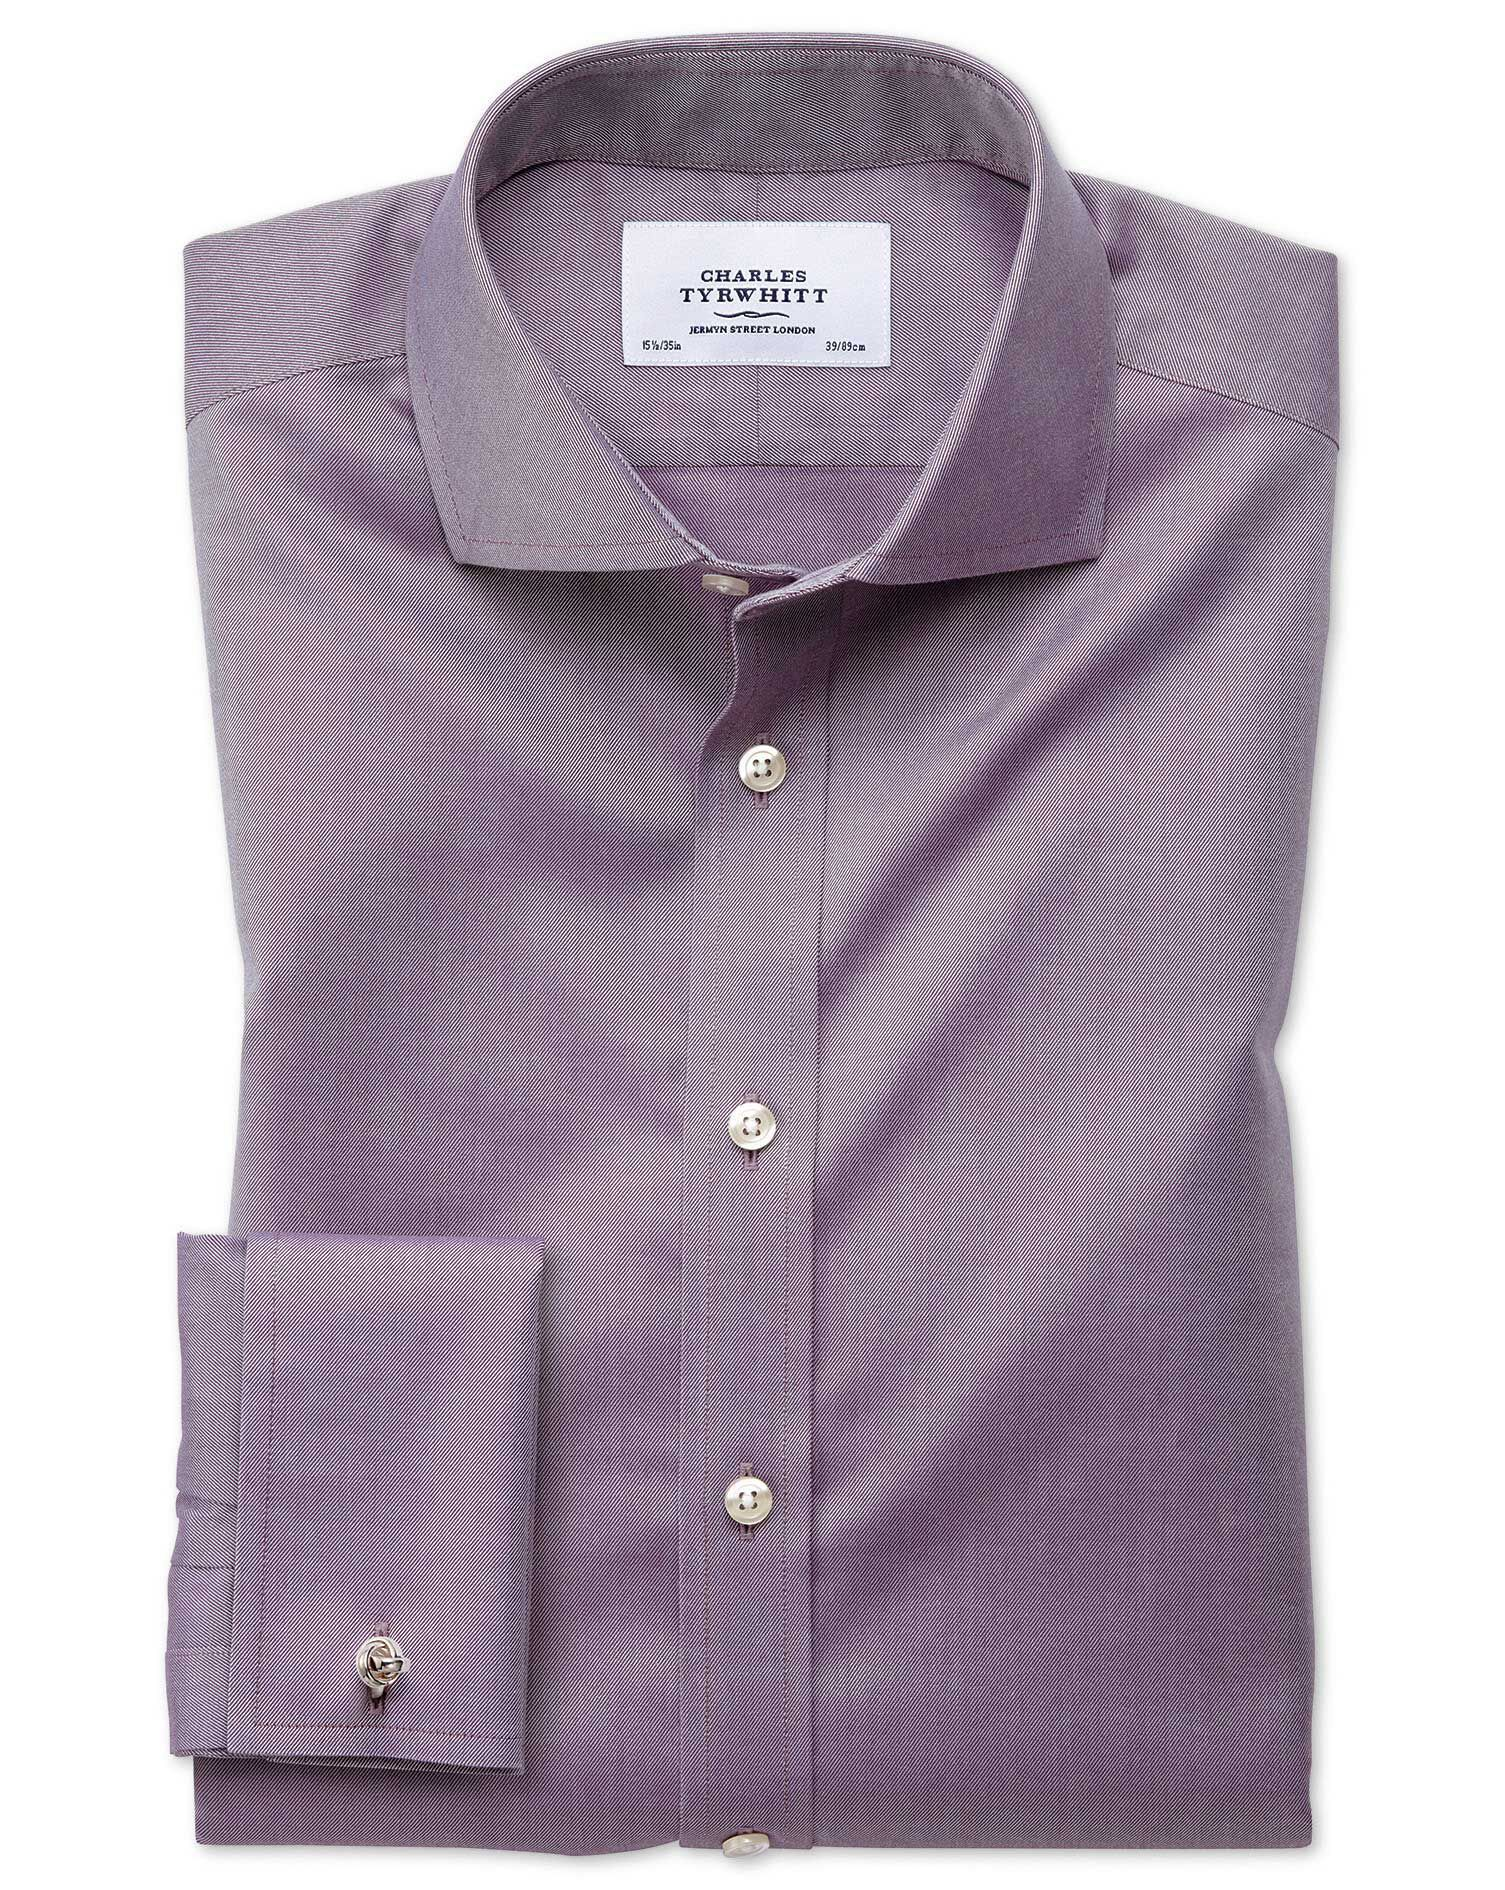 Extra Slim Fit Cutaway Non-Iron Twill Dark Purple Cotton Formal Shirt Single Cuff Size 15.5/32 by Ch